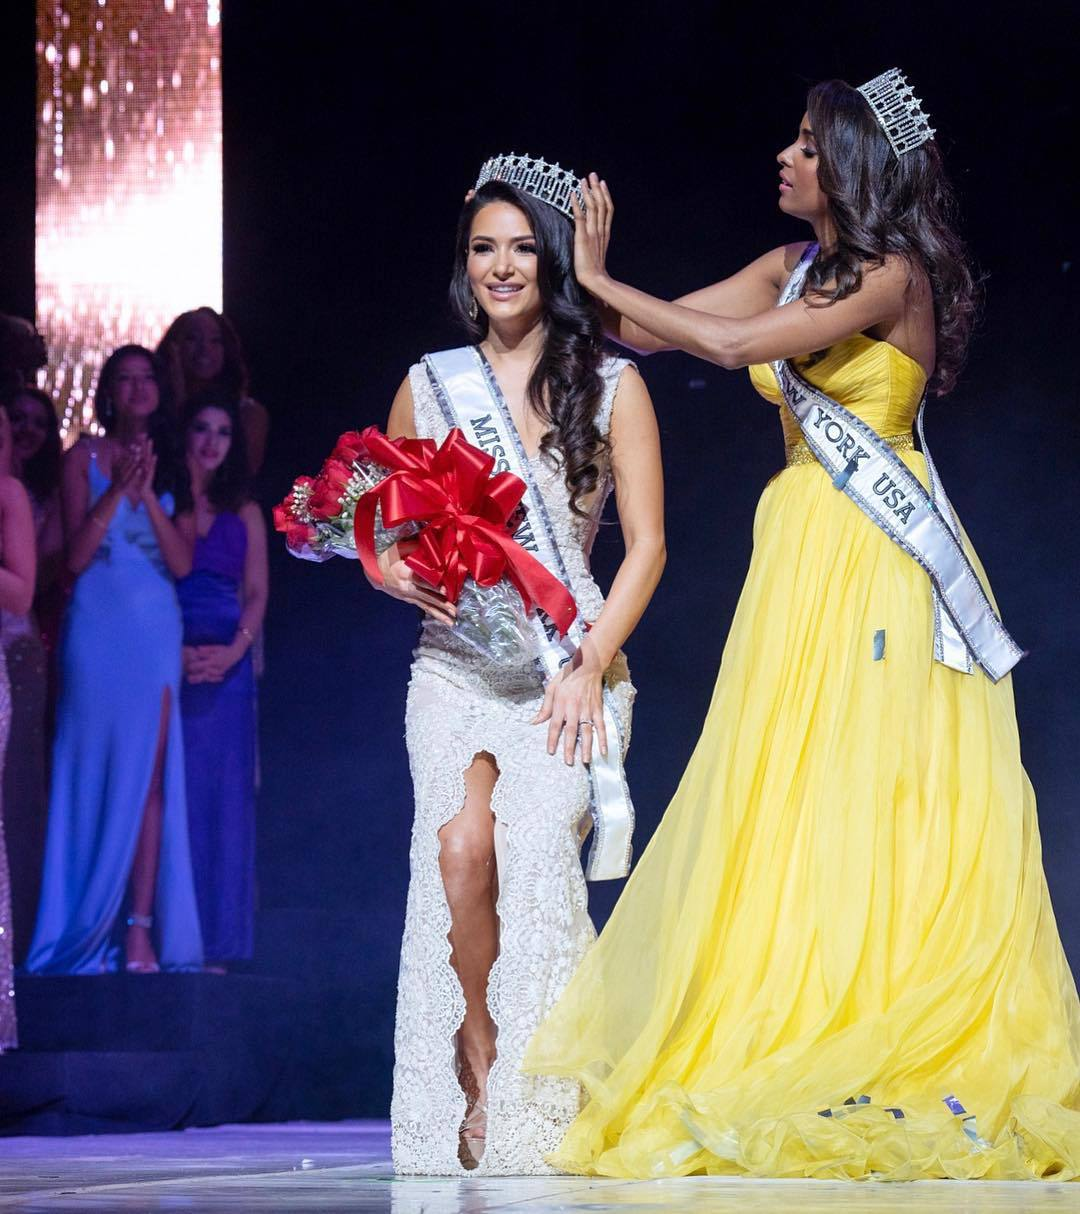 florinda kajtazi, miss new york 2019. 50080126_298034537728241_2333799949398801315_n